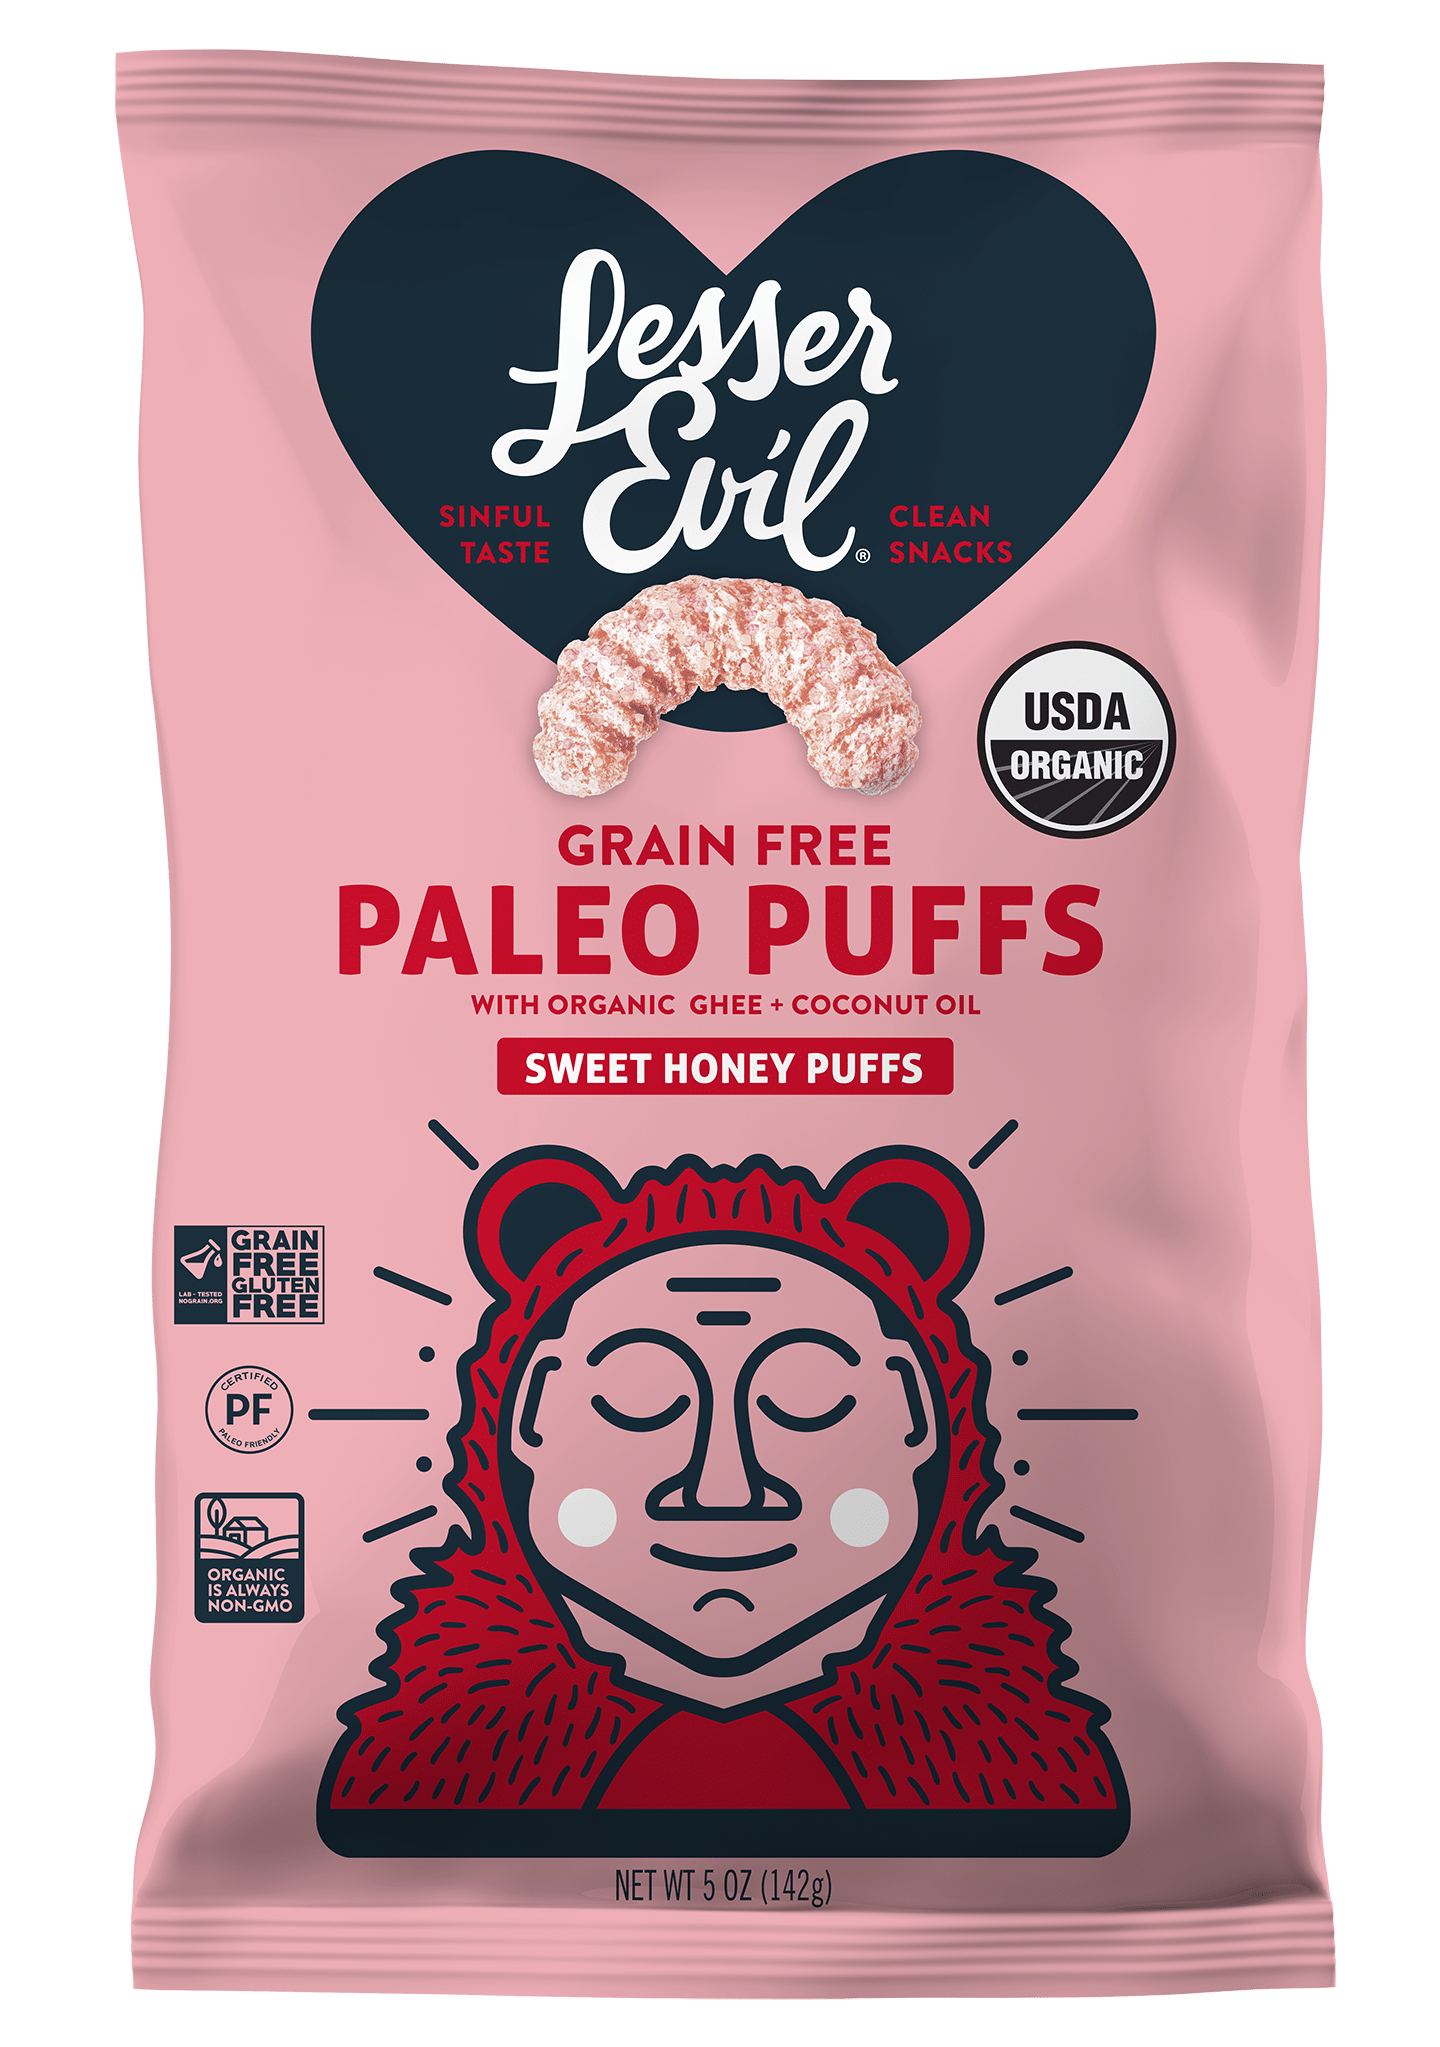 LesserEvil Introduces First Ever Seasonal Products with Valentine's Popcorn & Puffs